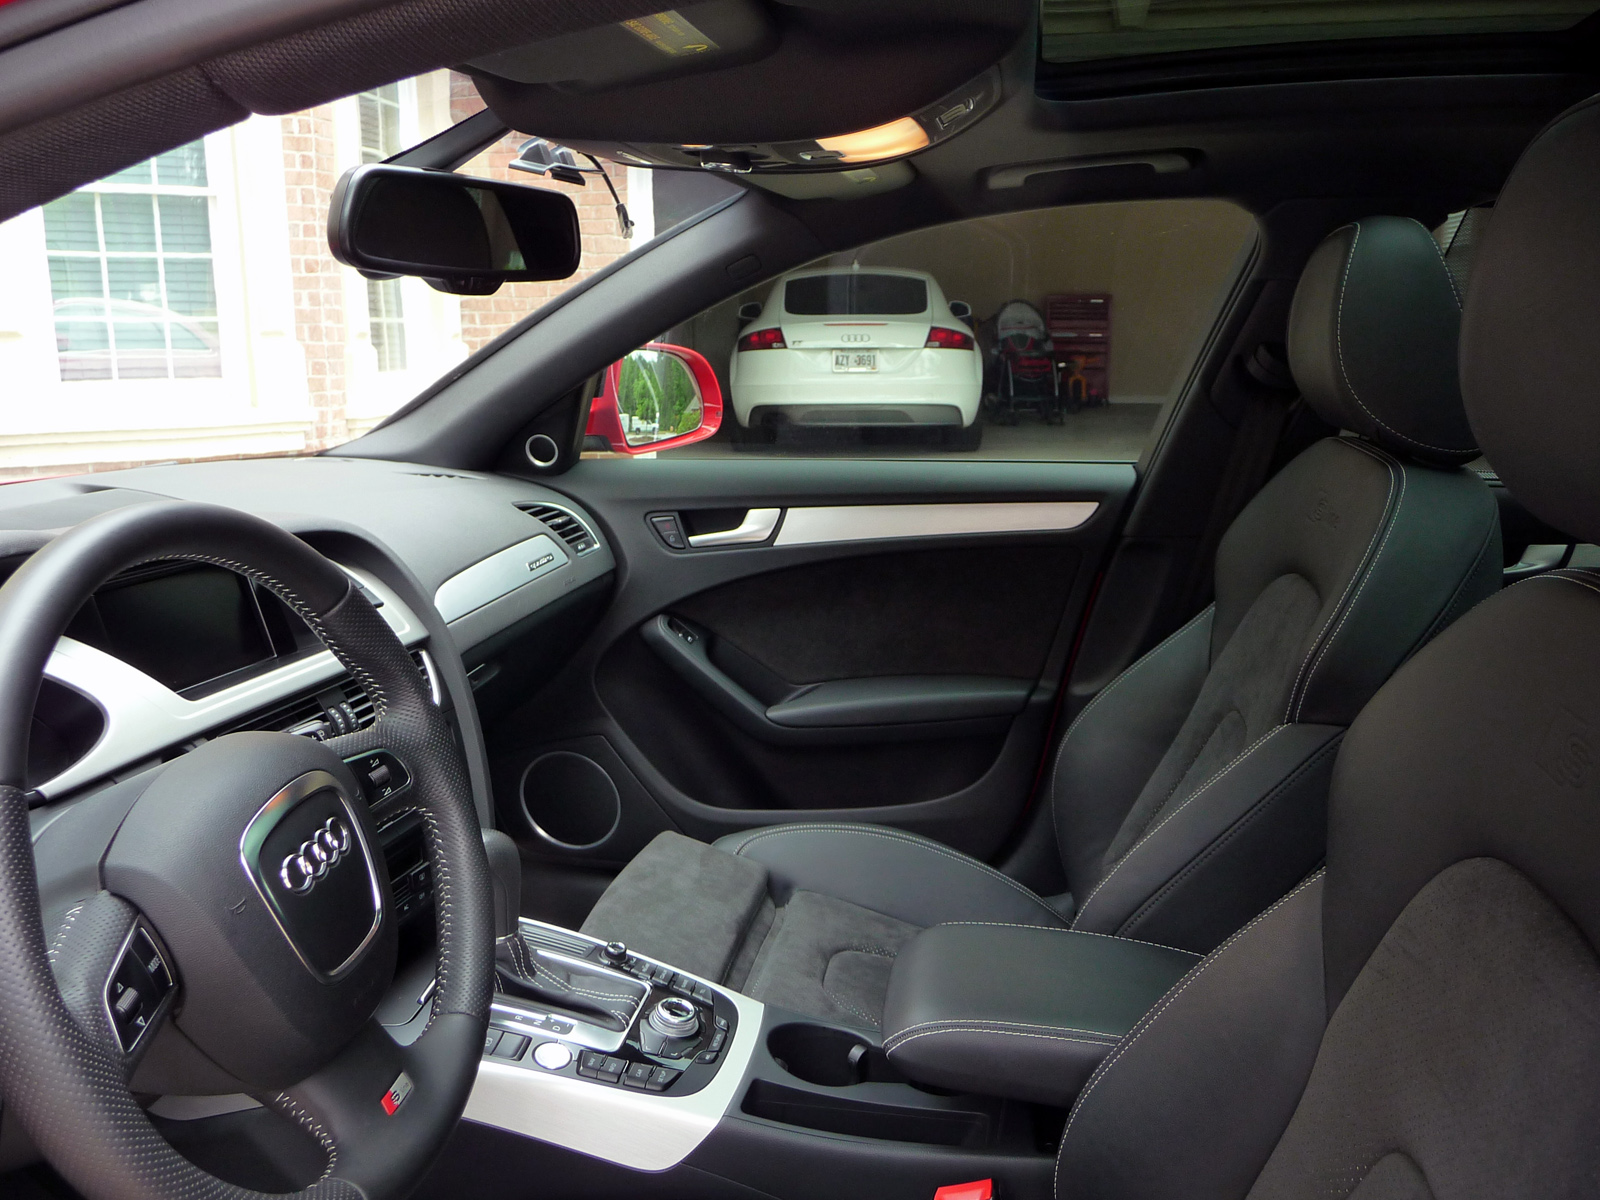 For Sale 2009 Audi A4 20t S Line Prestige Quattro Avant Fuse Box With A Dark Headliner Was To Order The